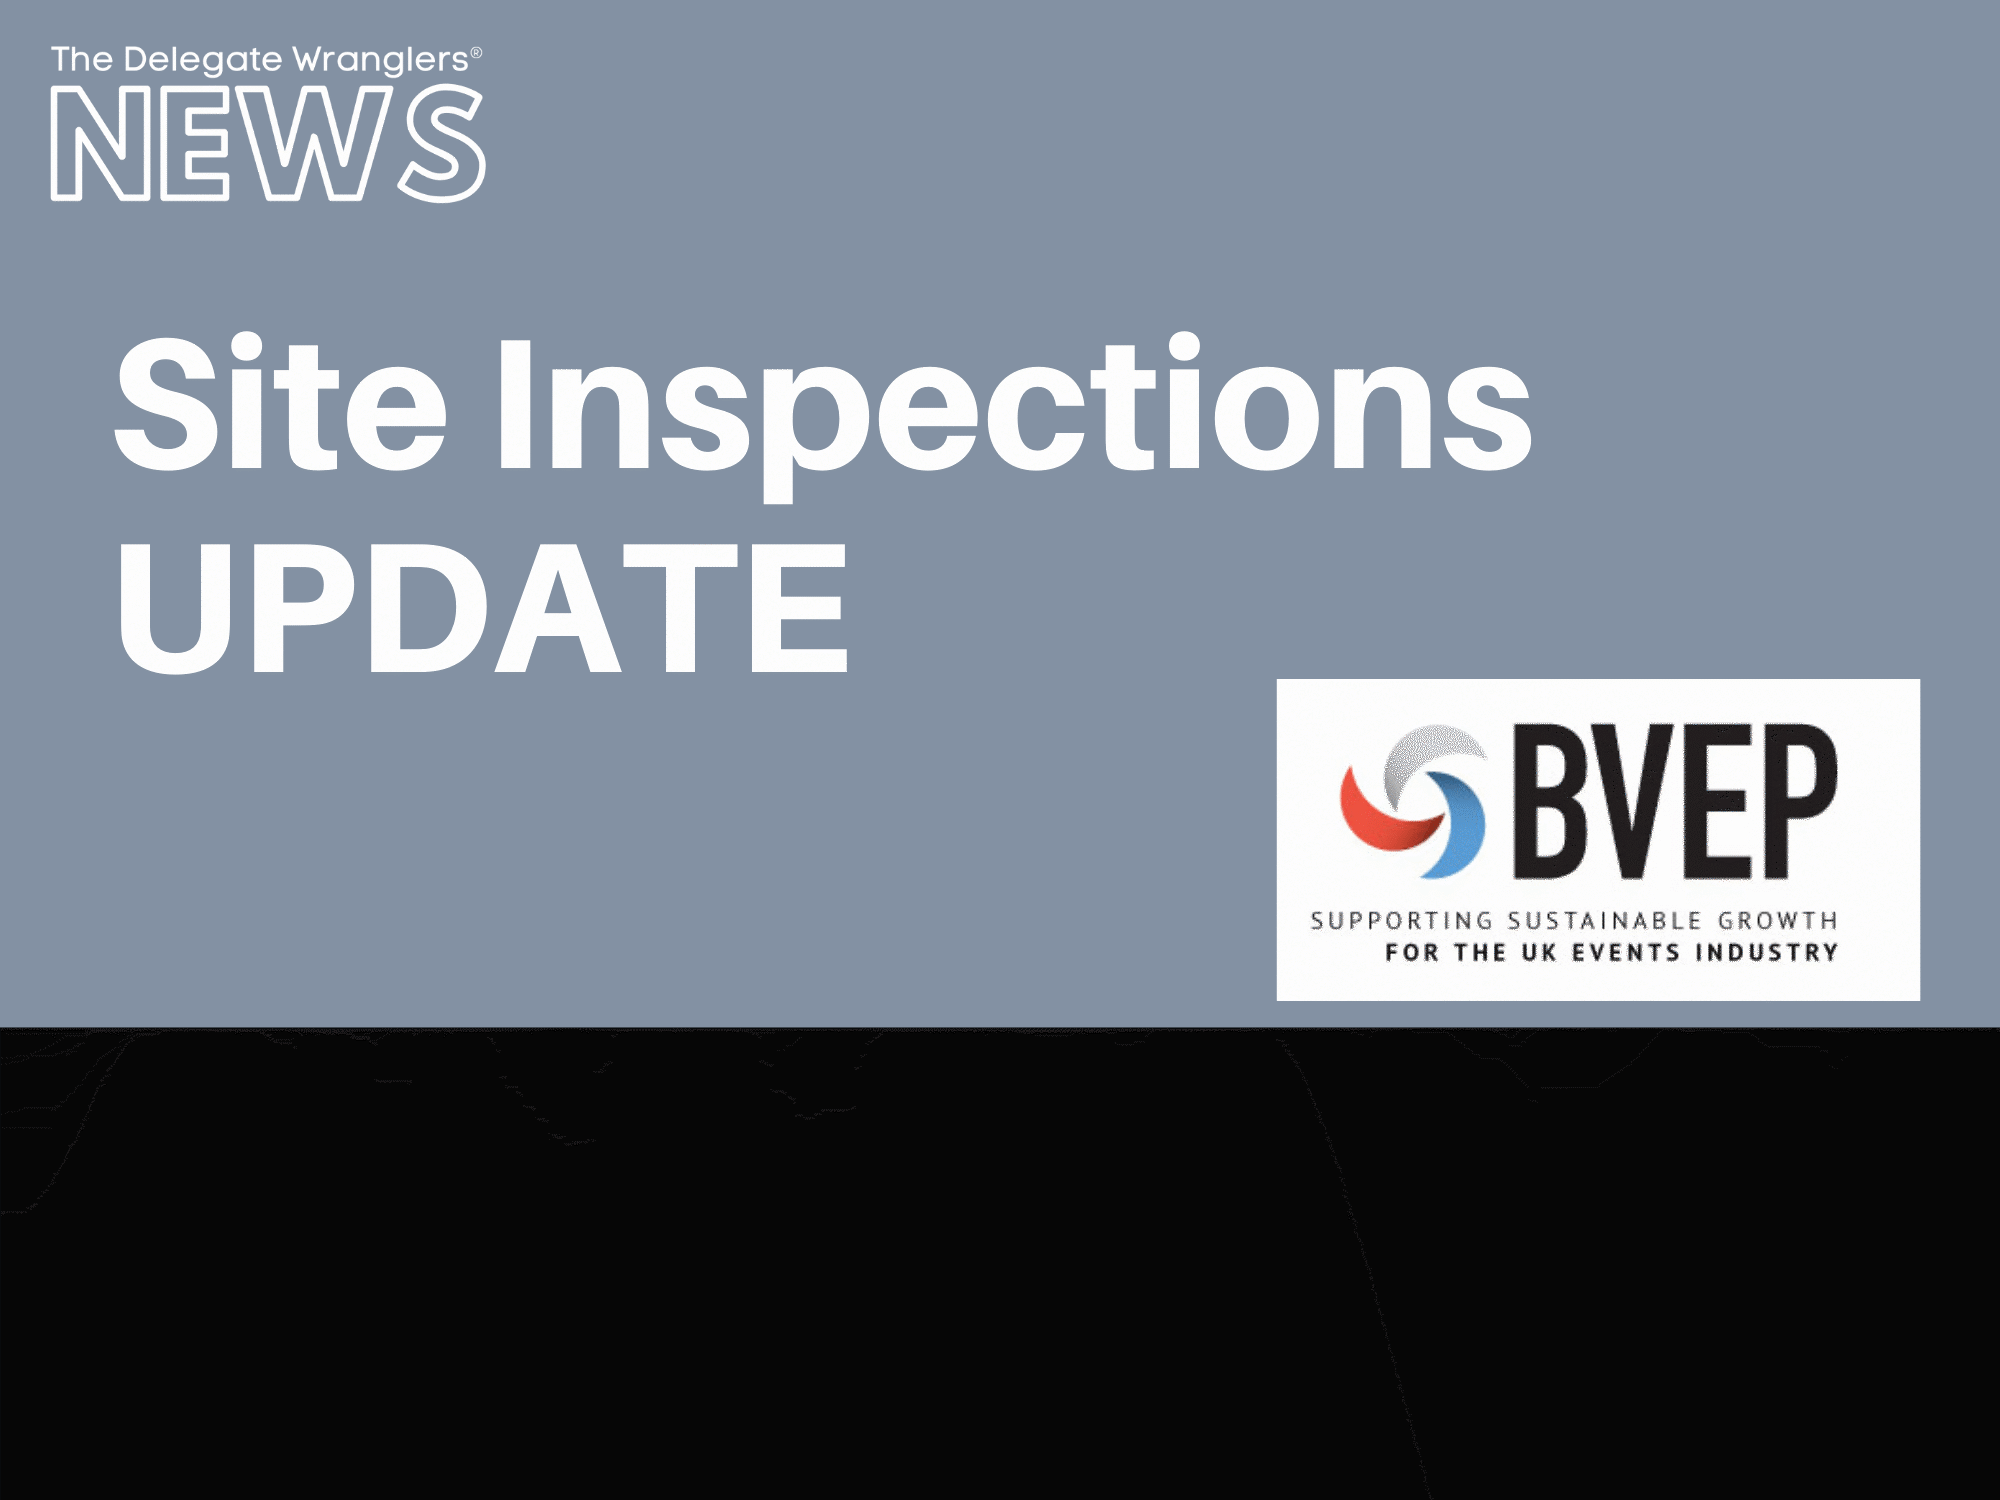 BVEP says venue site visits for business events will be permitted from 29th March